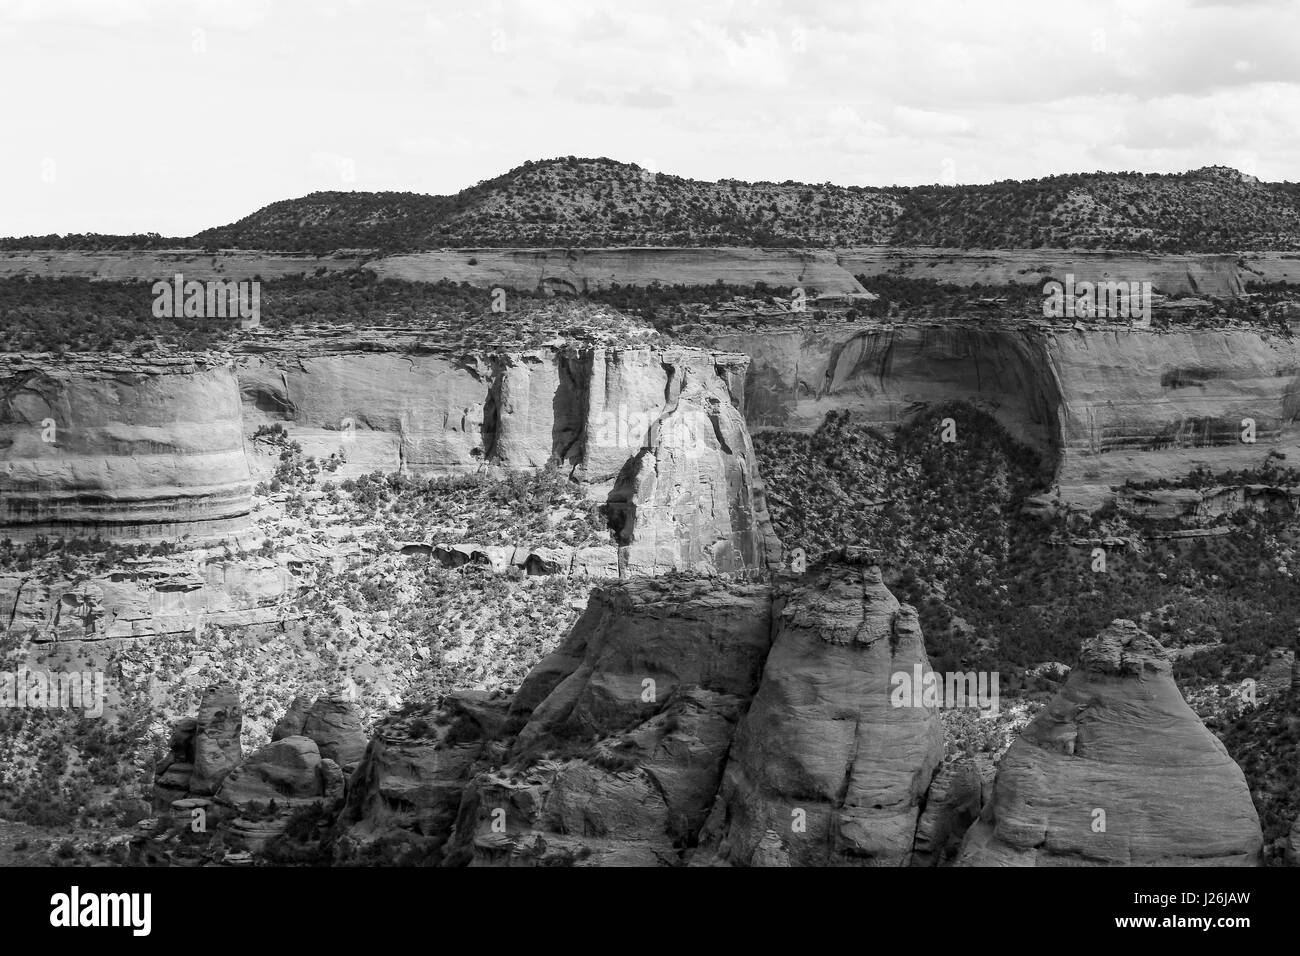 The rock formation called the Coke Ovens in the Colorado National Monument. The picture is in monochrome. Stock Photo